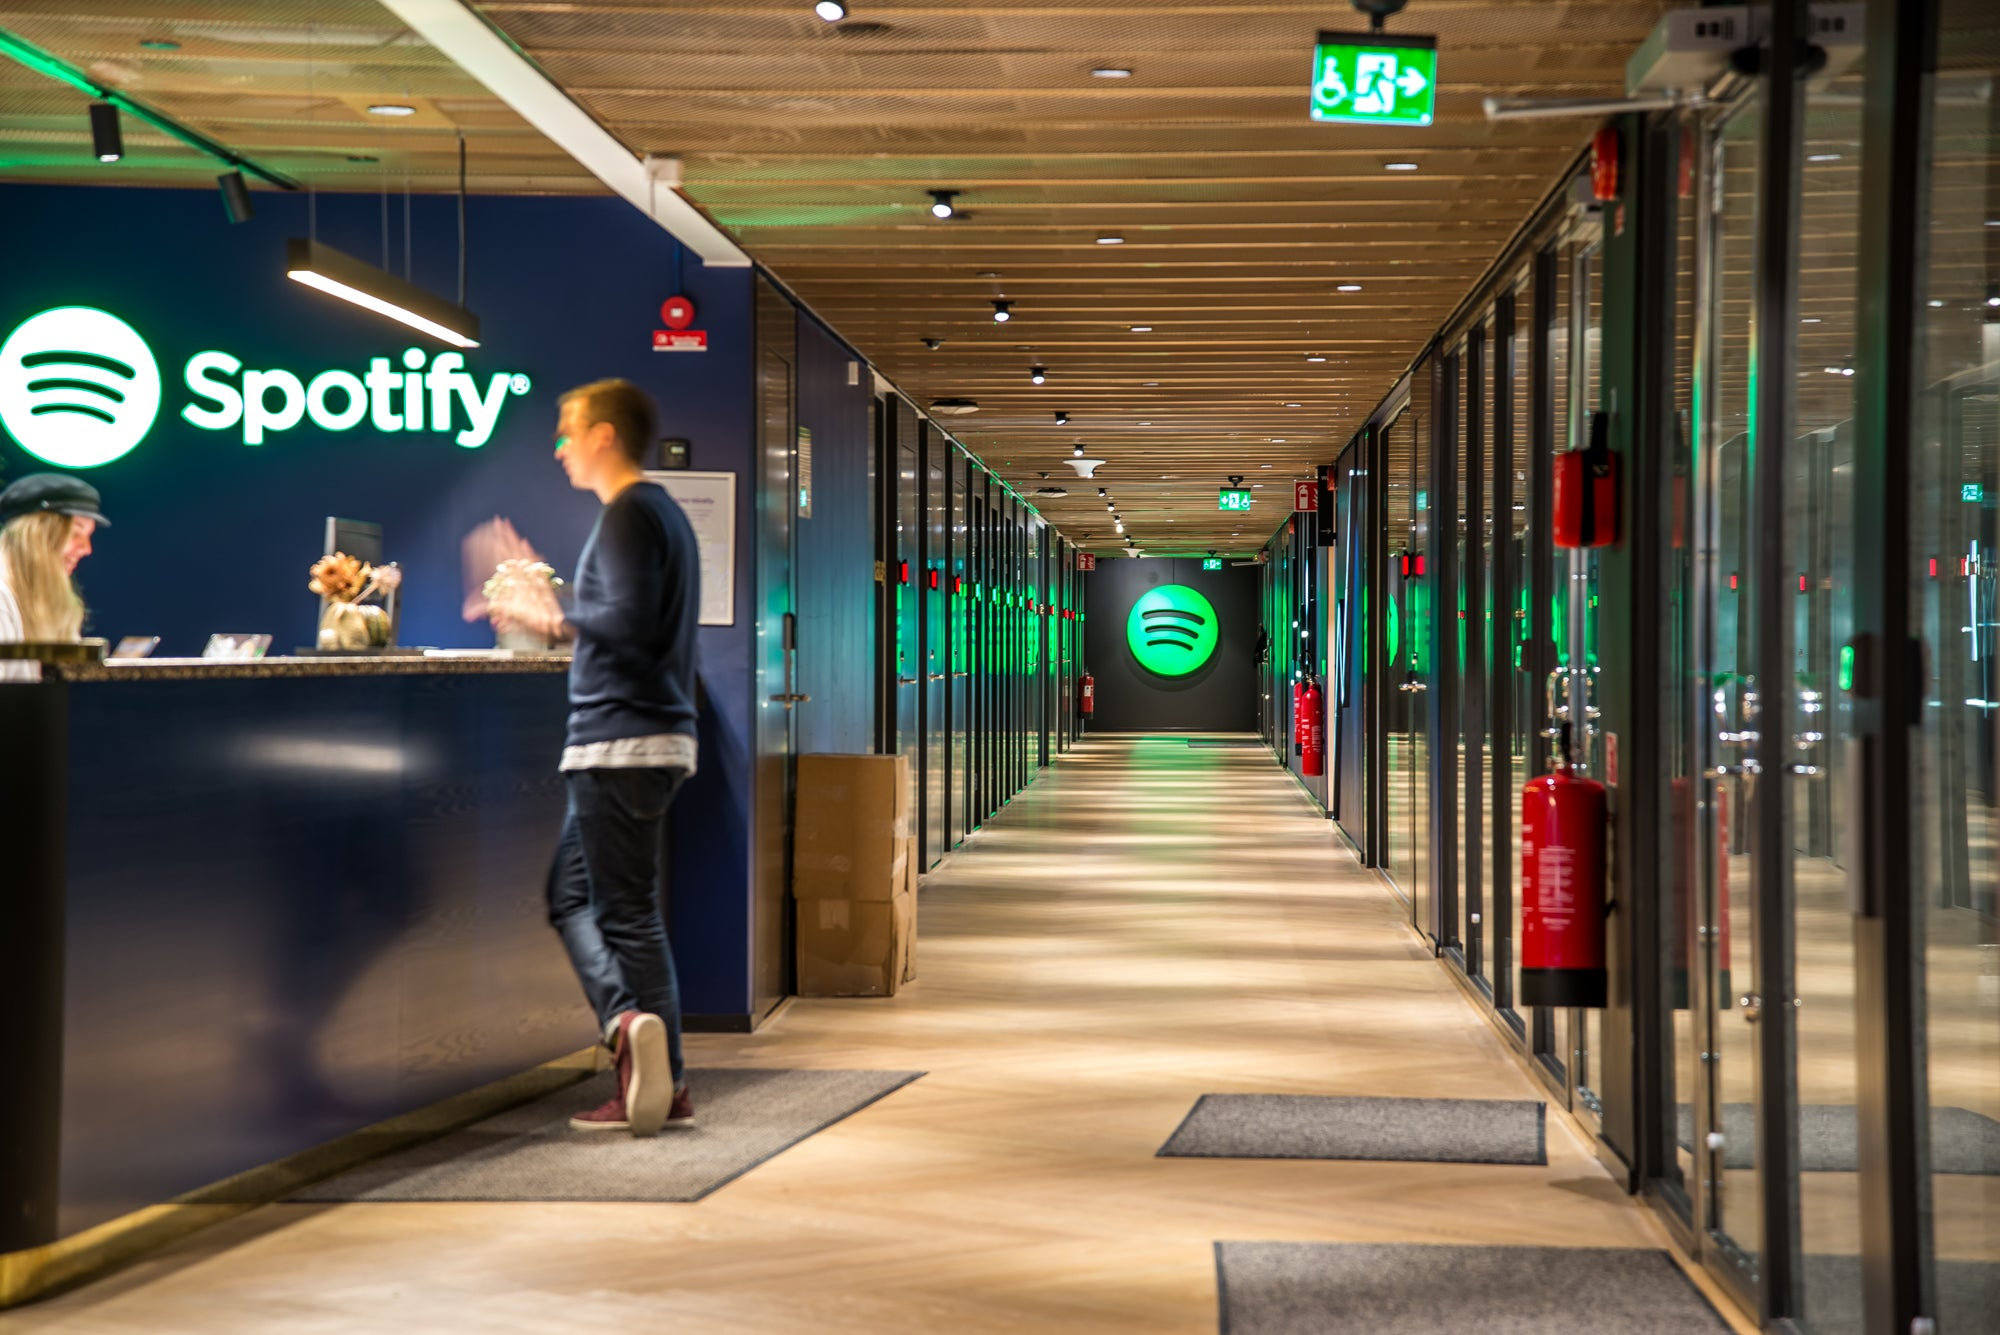 Reception area at Spotify headquarters